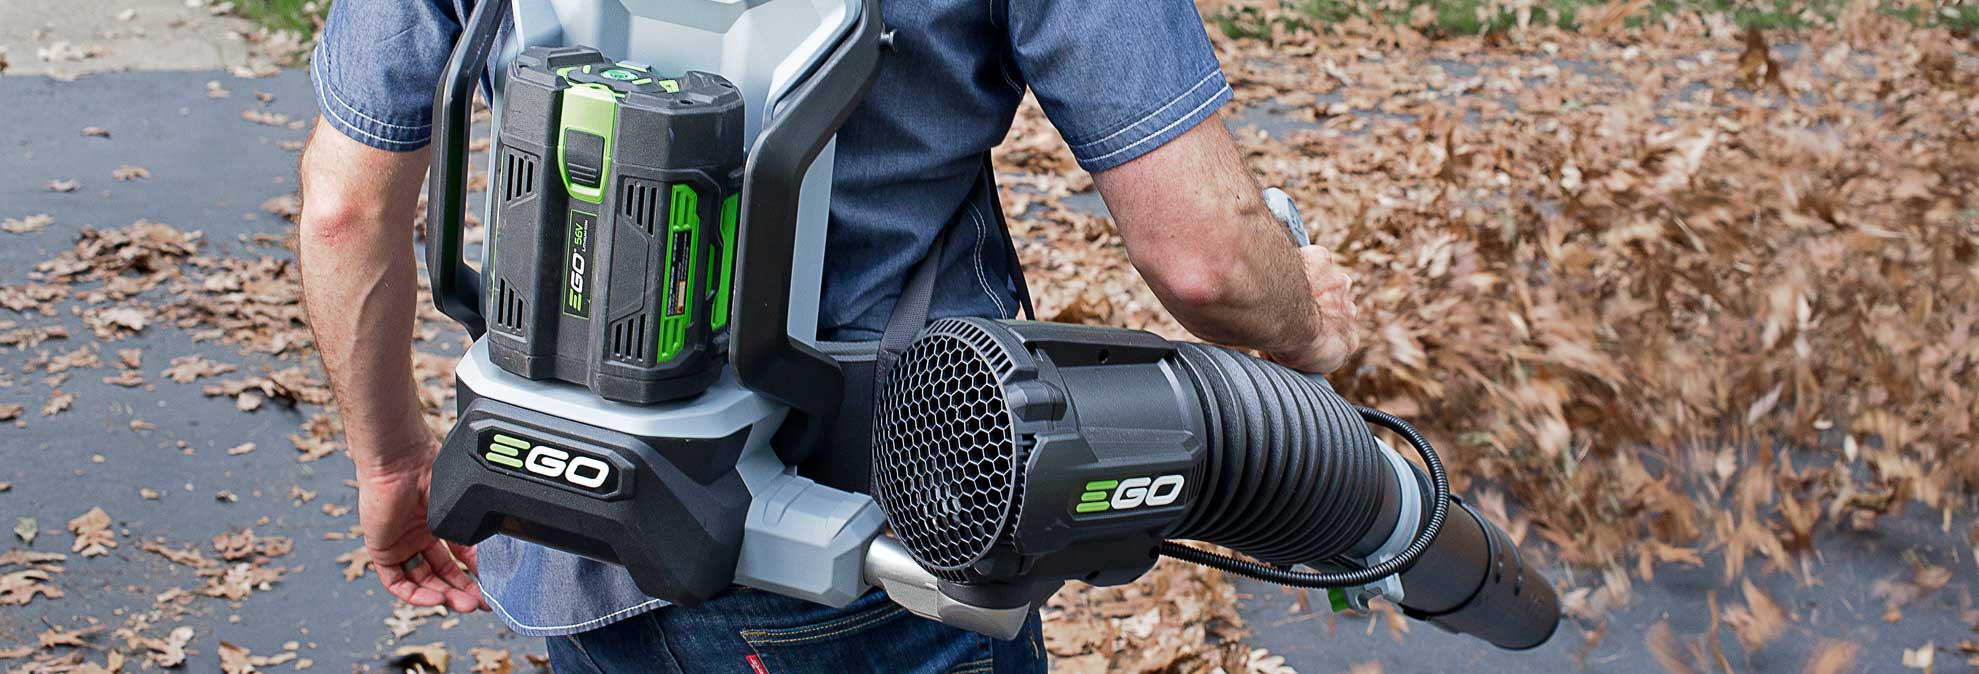 EGO Leaf Blower Blew Away the Electric Competition ...